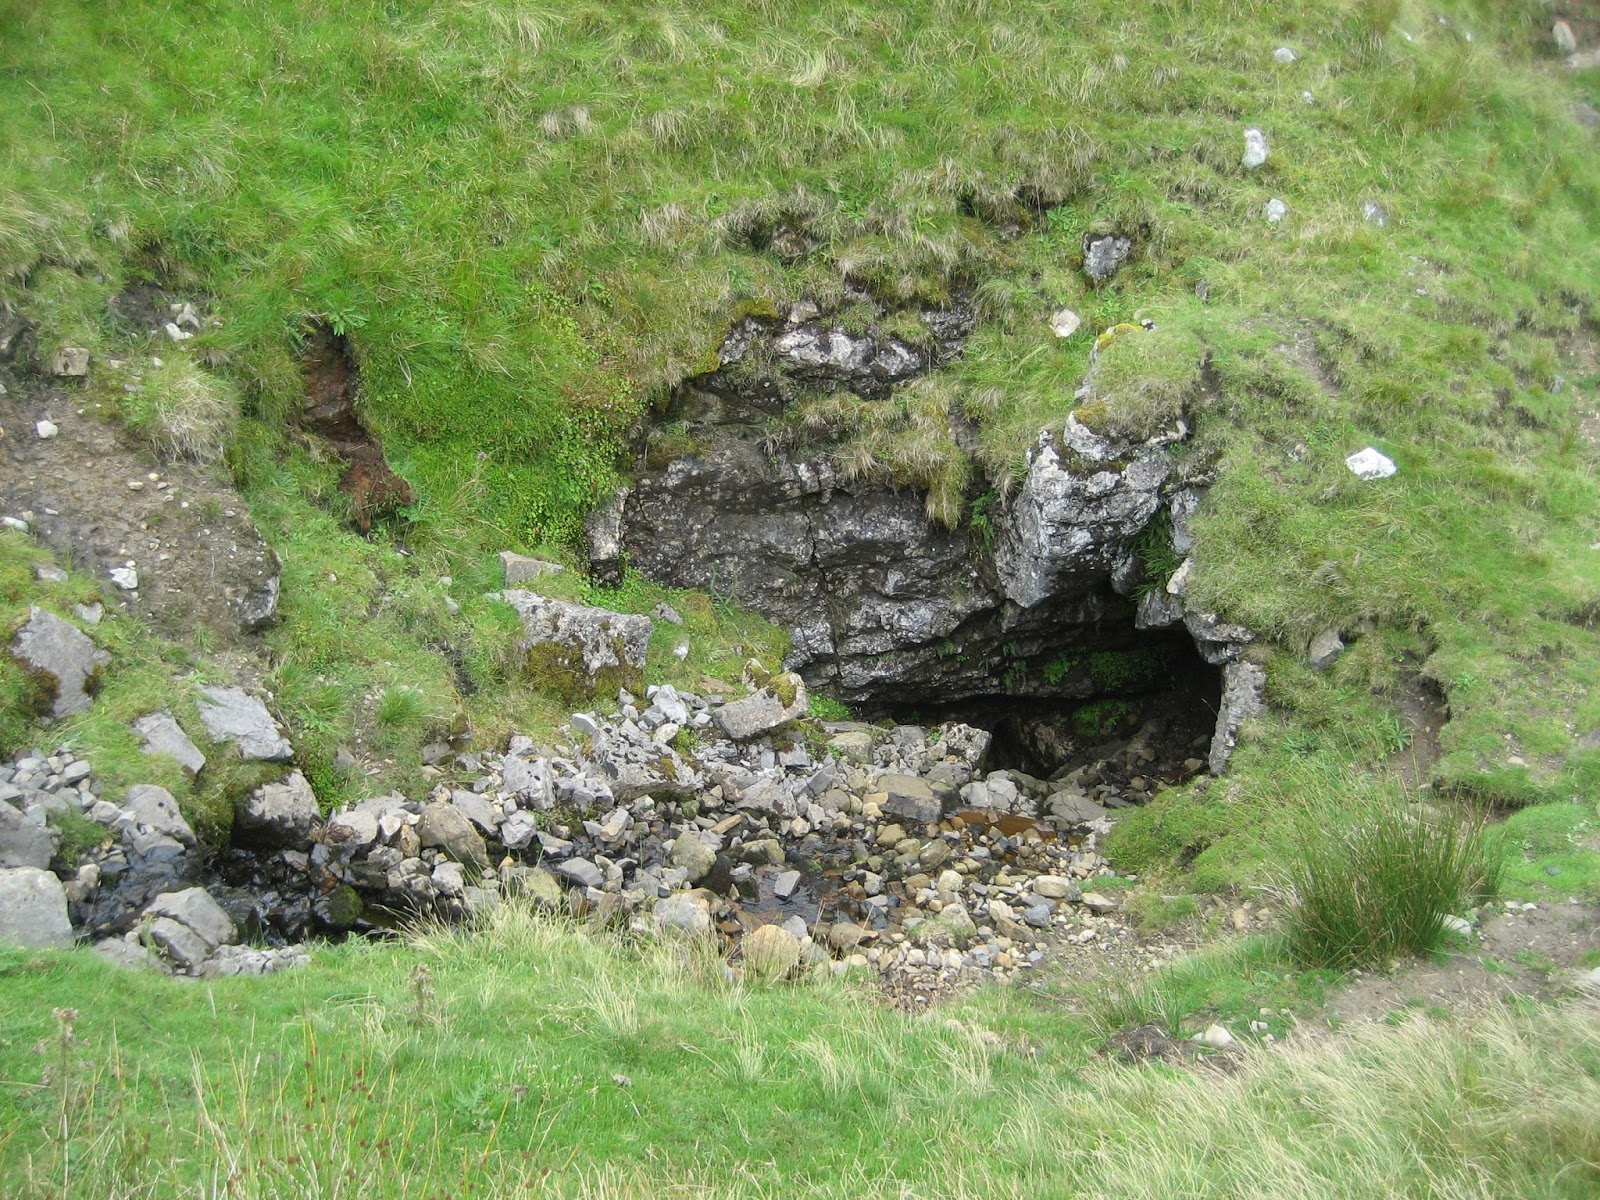 Tatham Wife Hole, where, thanks to the Green Edge Fault, water rushes out of the Hardraw Scar Limestone on the left, before disappearing into the Great Scar on the right. Stephen Oldfield